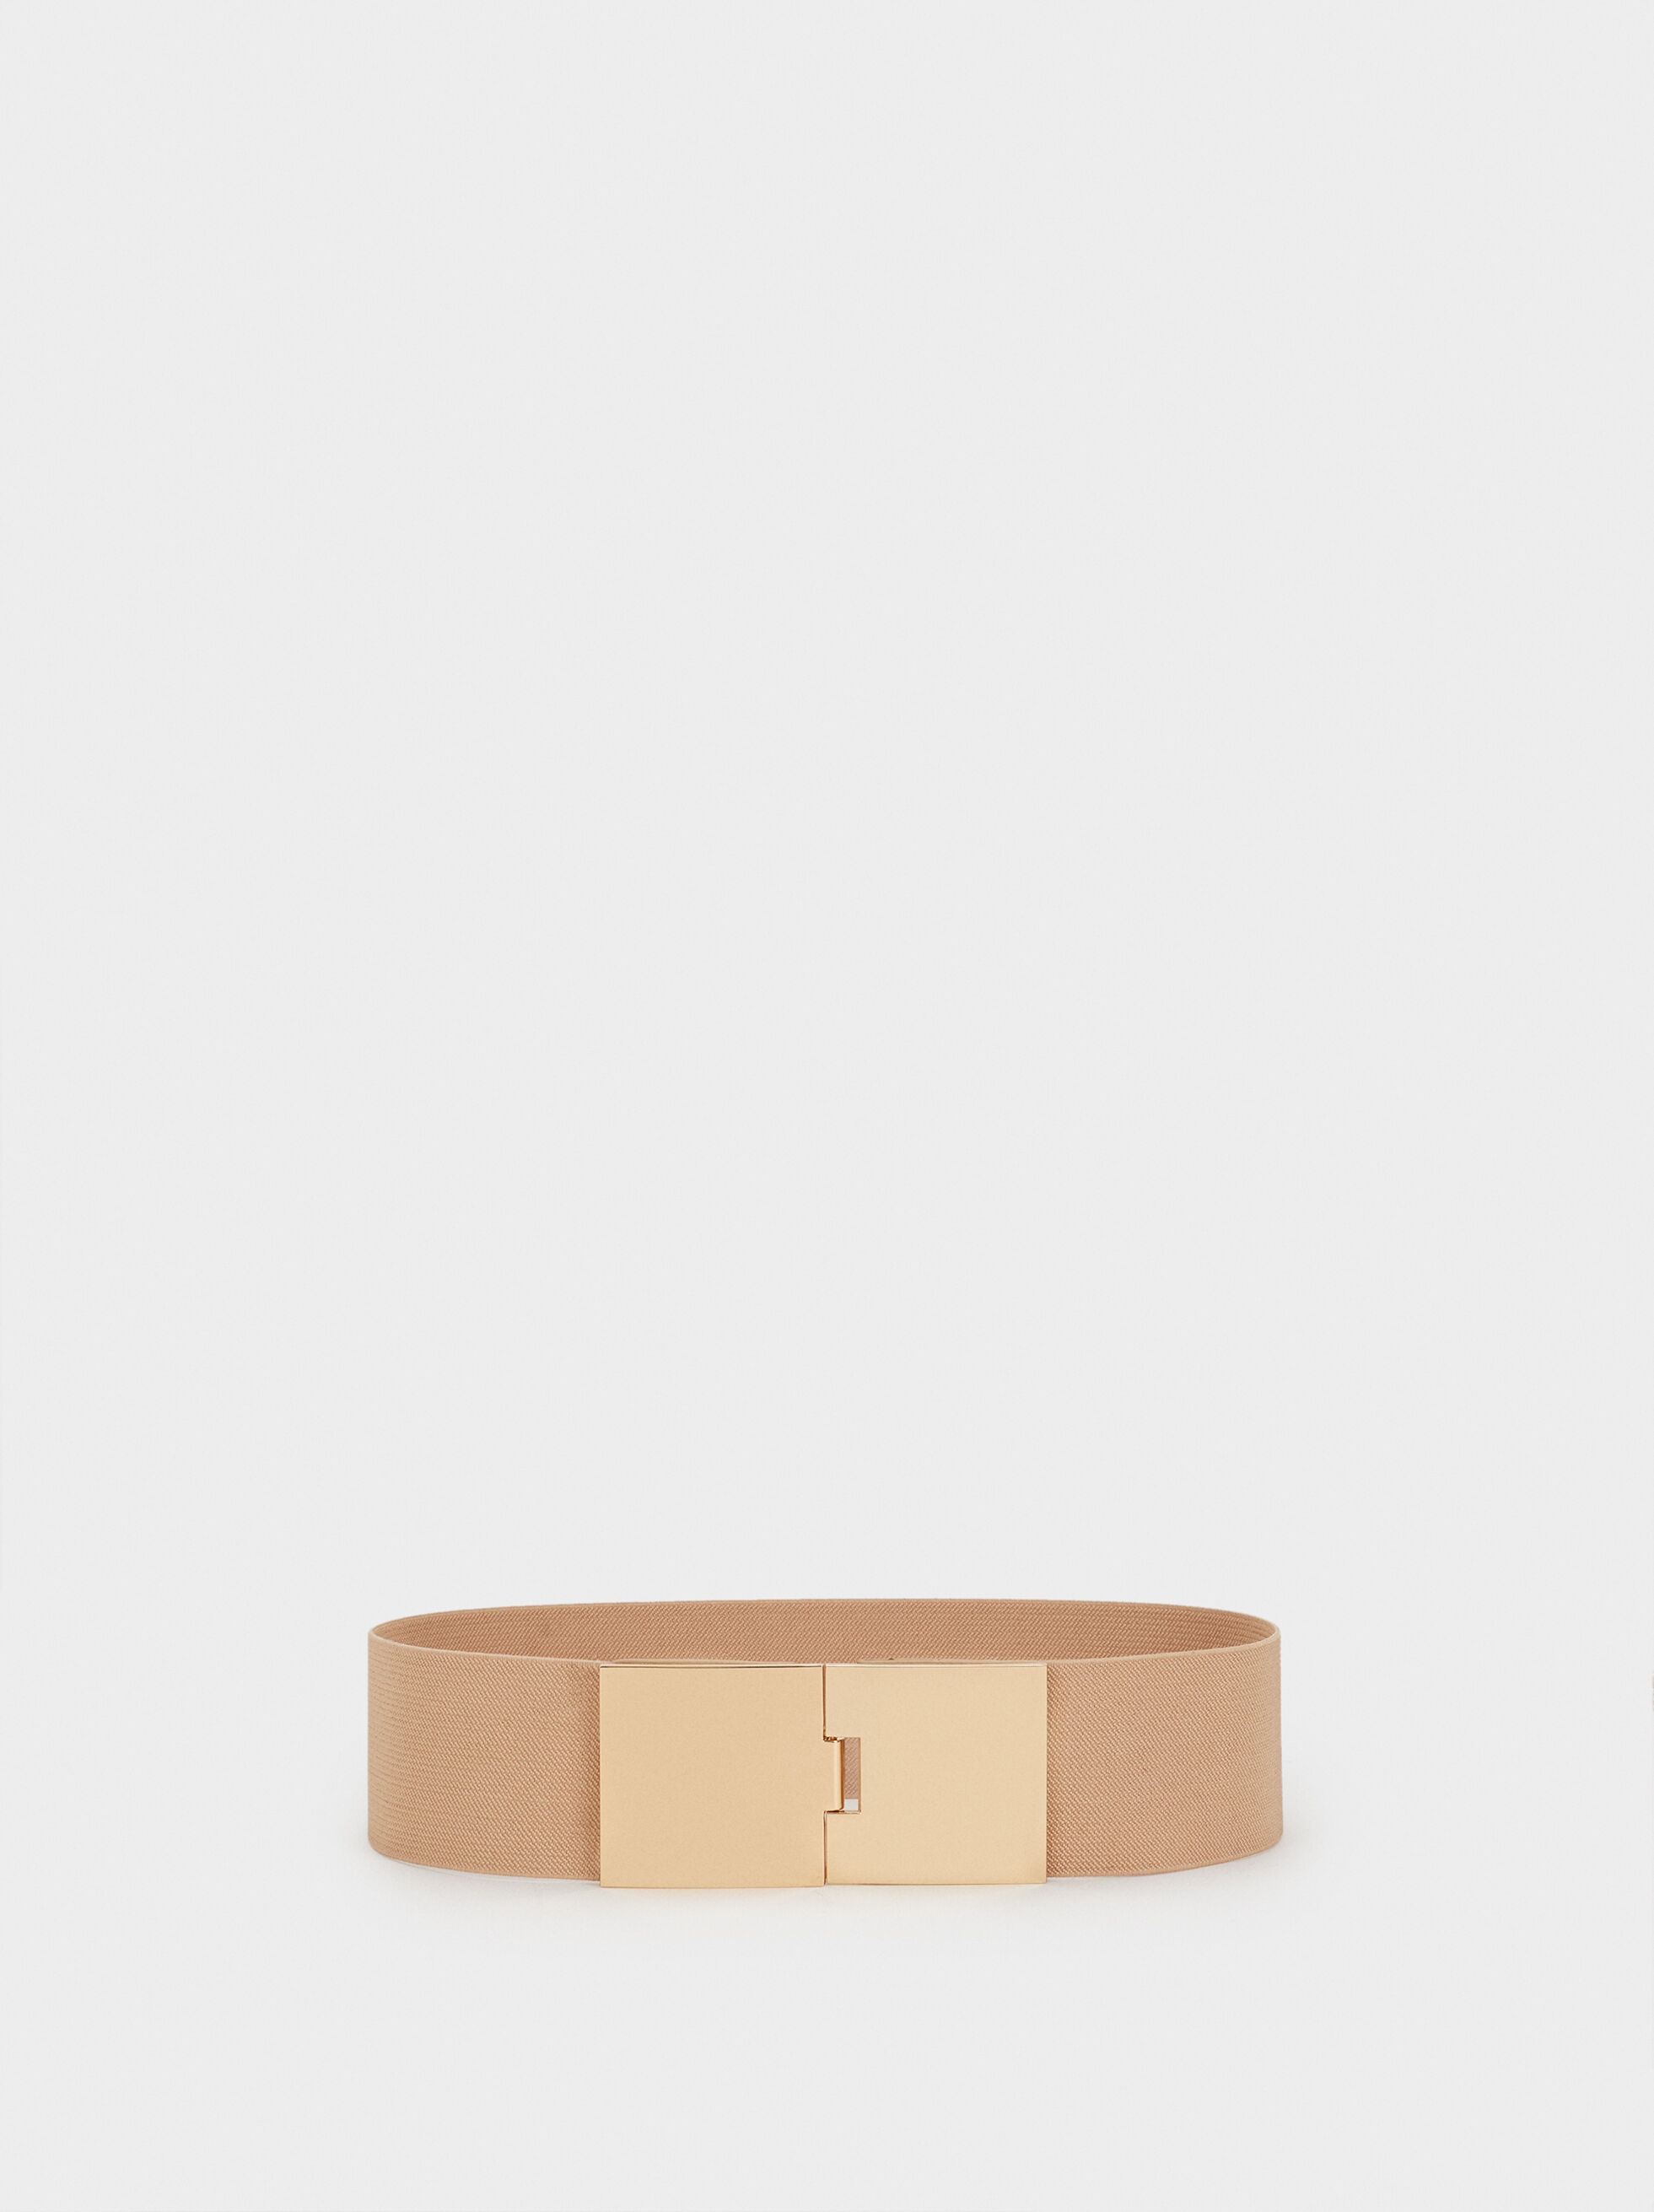 Stretch Belt, , hi-res